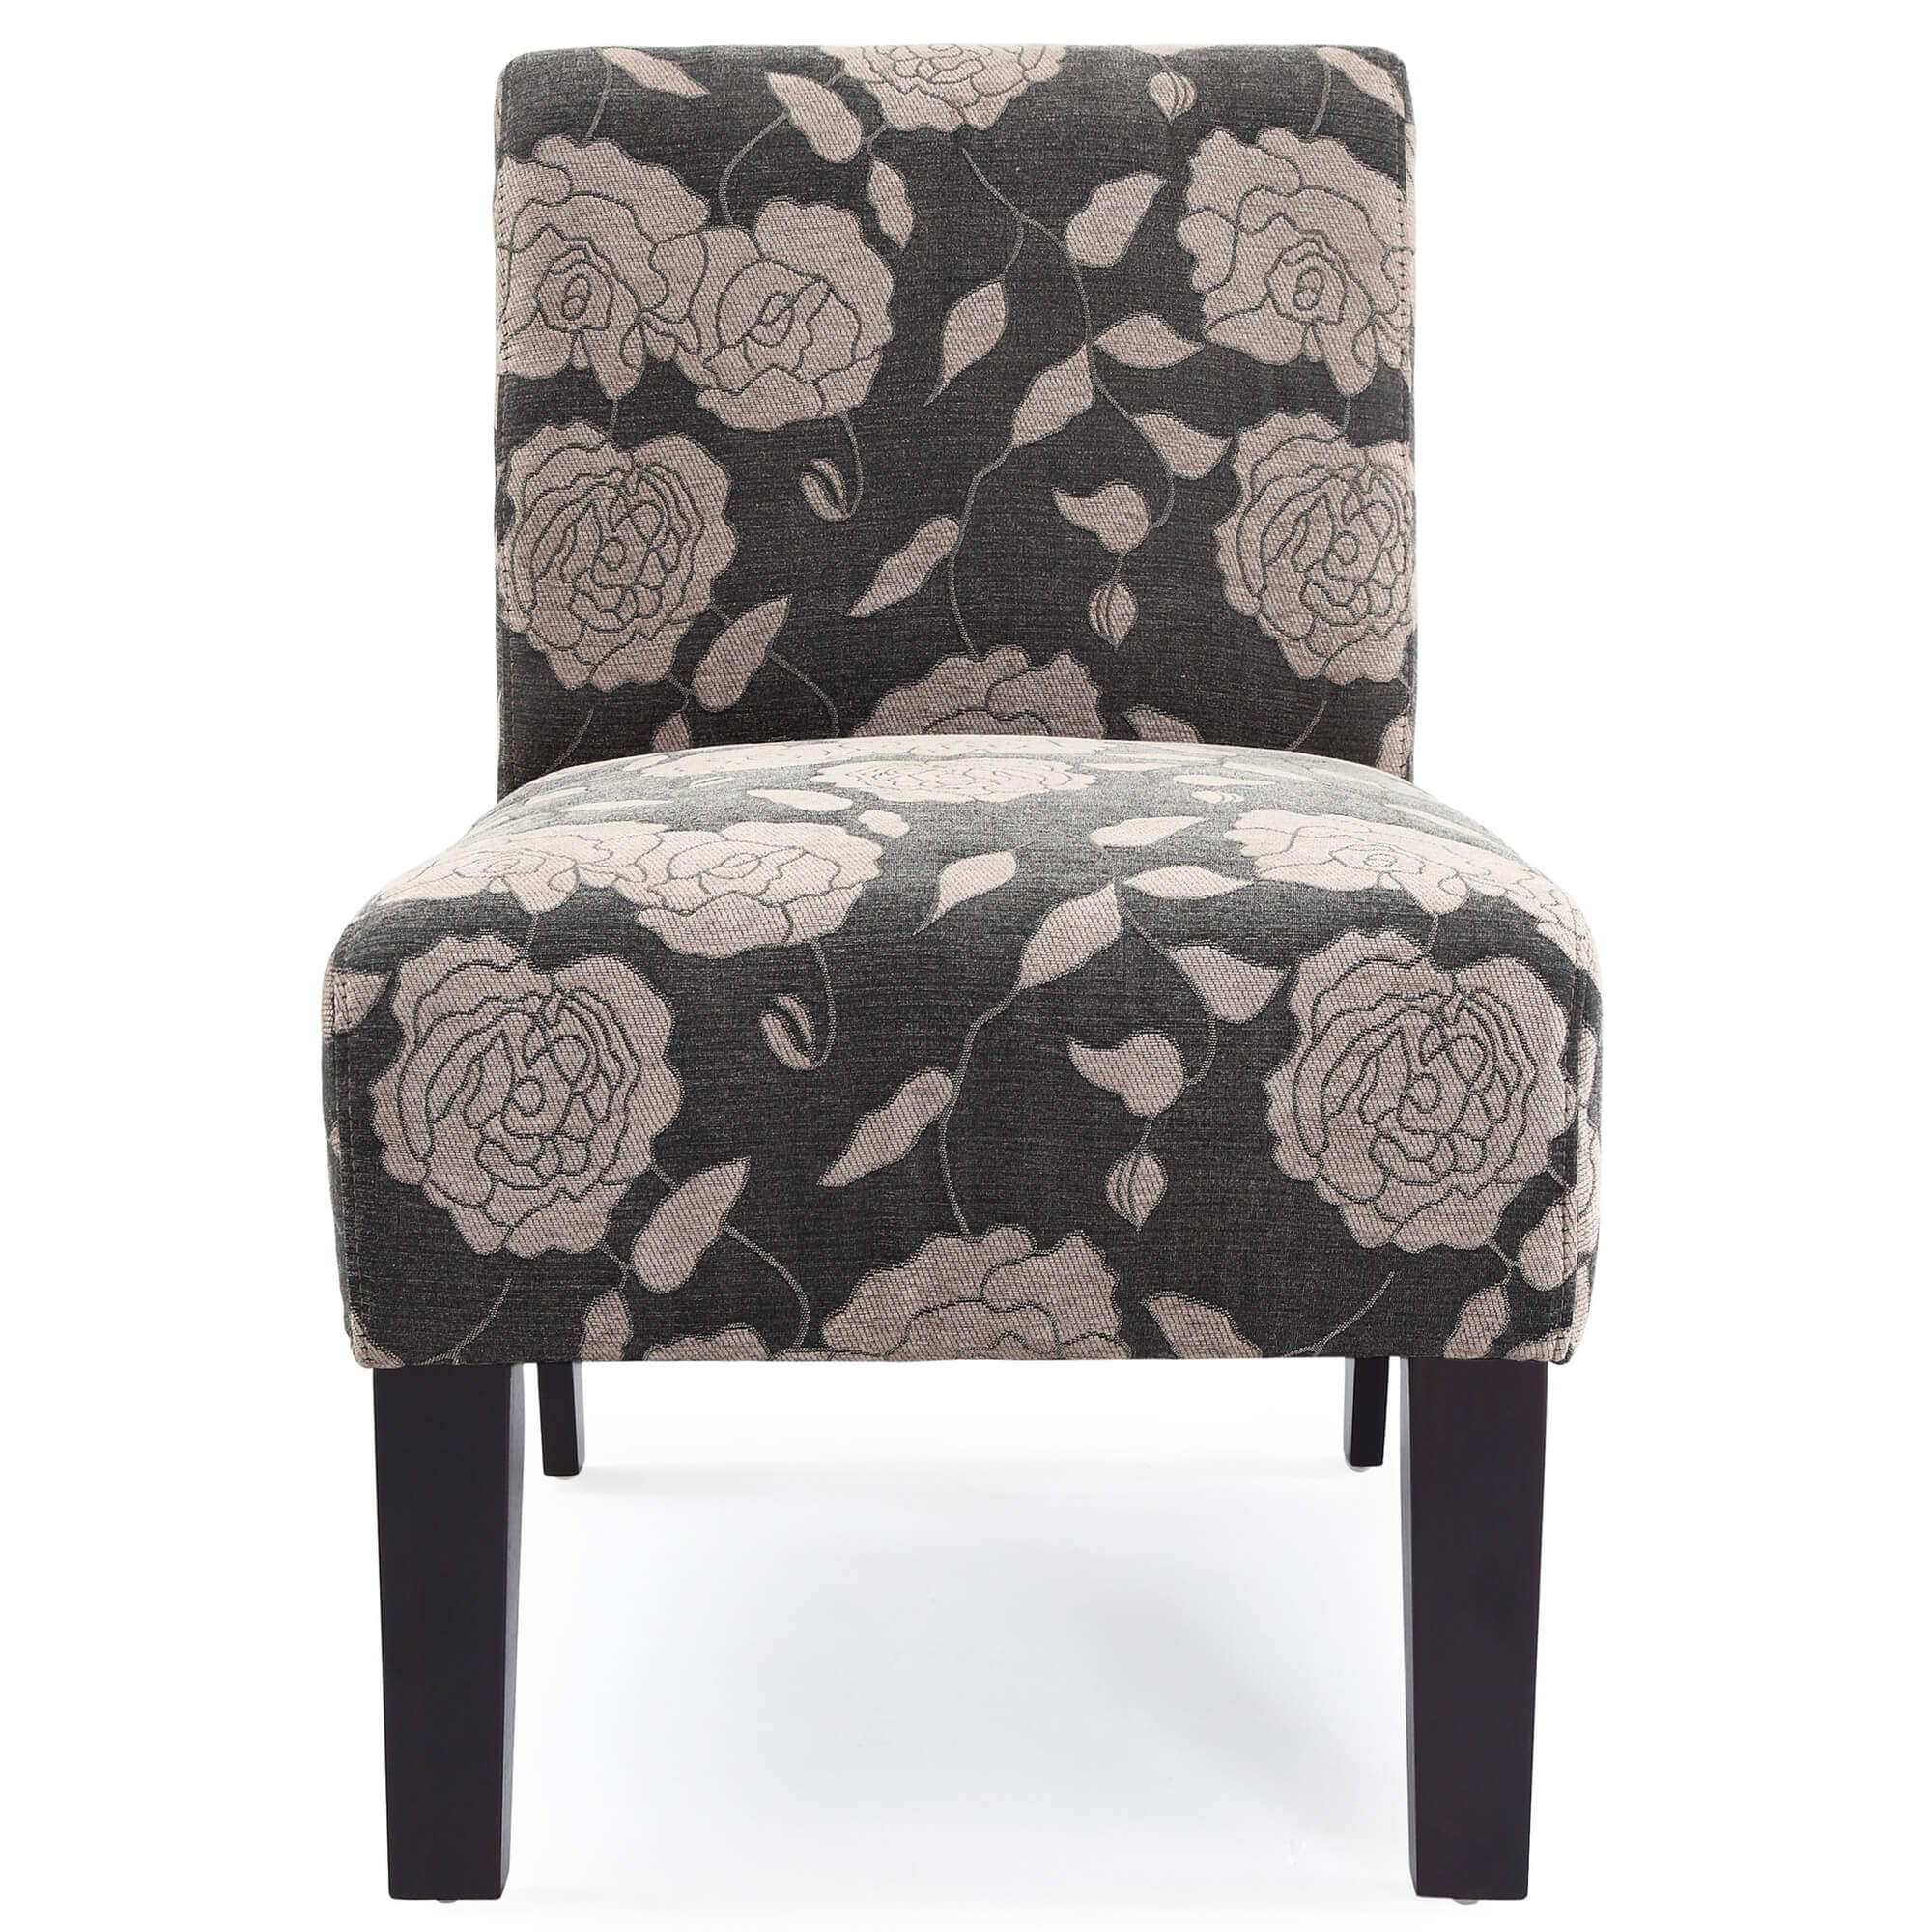 This is a floral accent chair with a mainly dark pattern that would work well with dark grey furniture for a matching color scheme